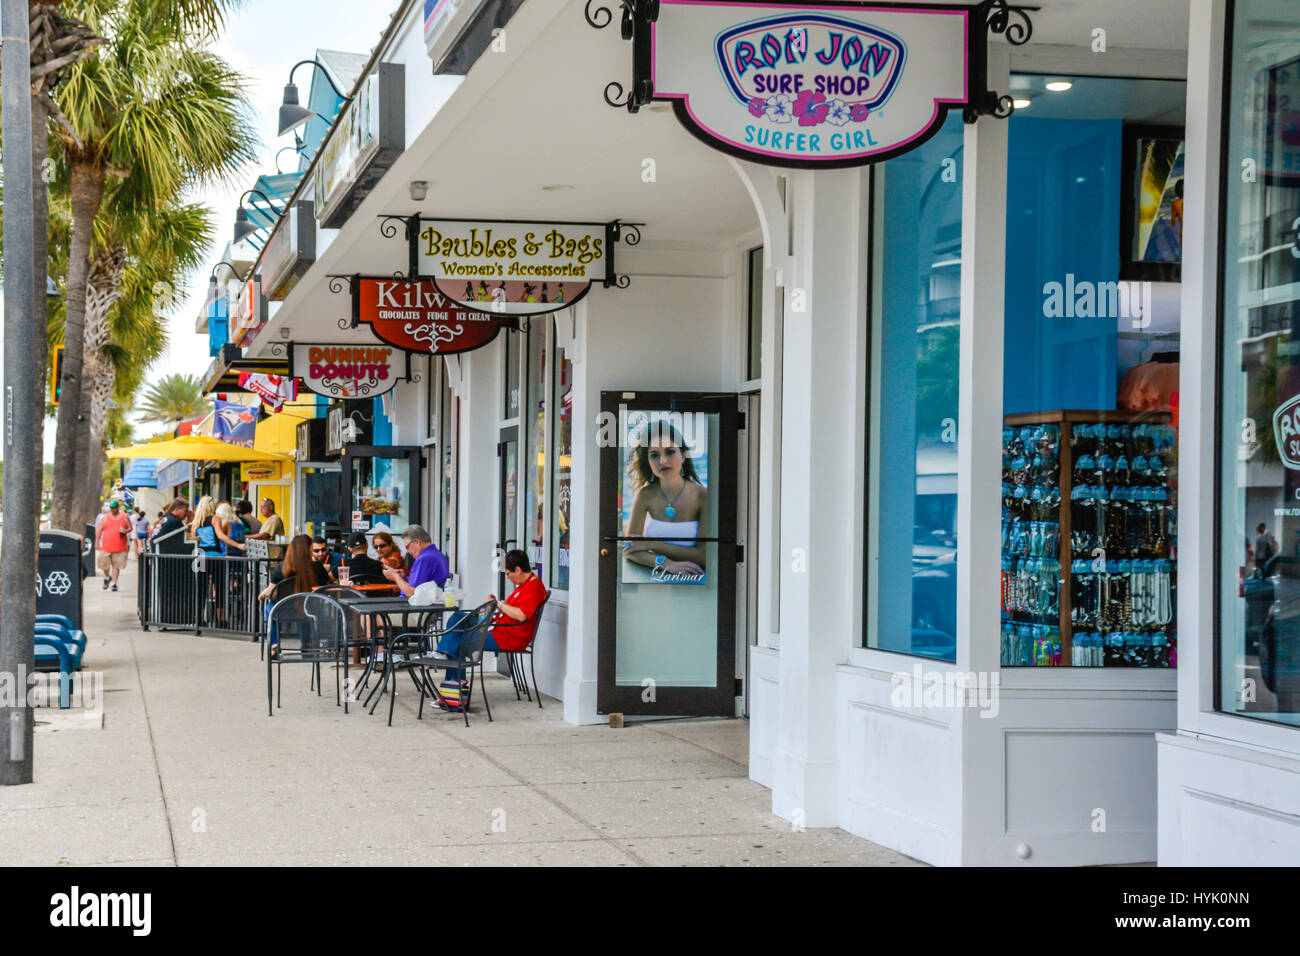 A Sidewalk View Of Retail Storefronts And Restaurants With Patio